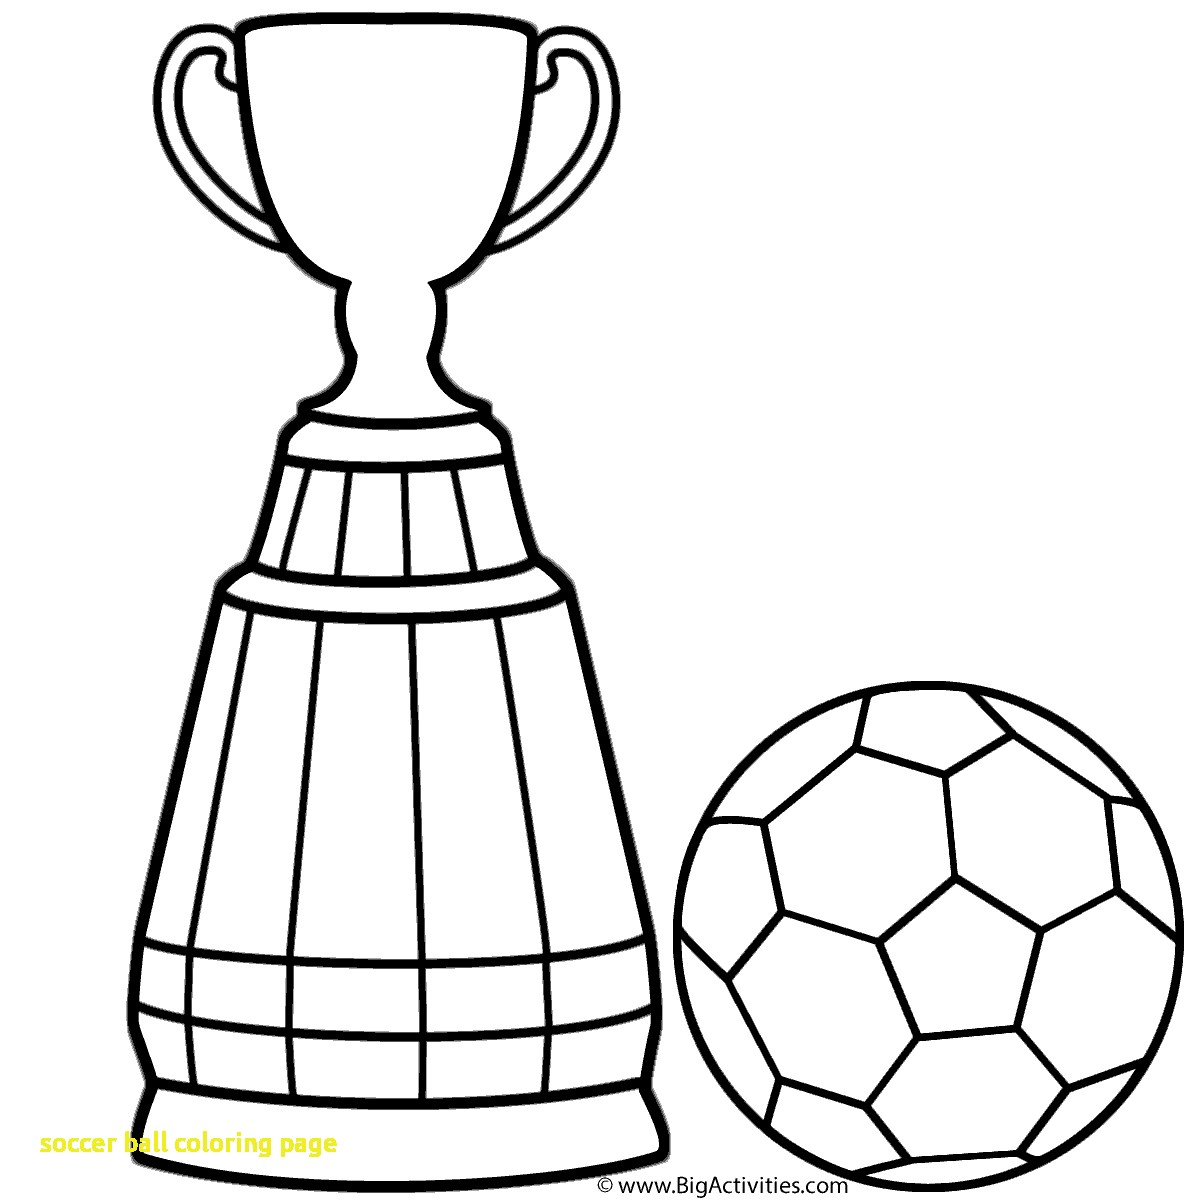 Soccer Ball Drawing Easy at GetDrawings | Free download